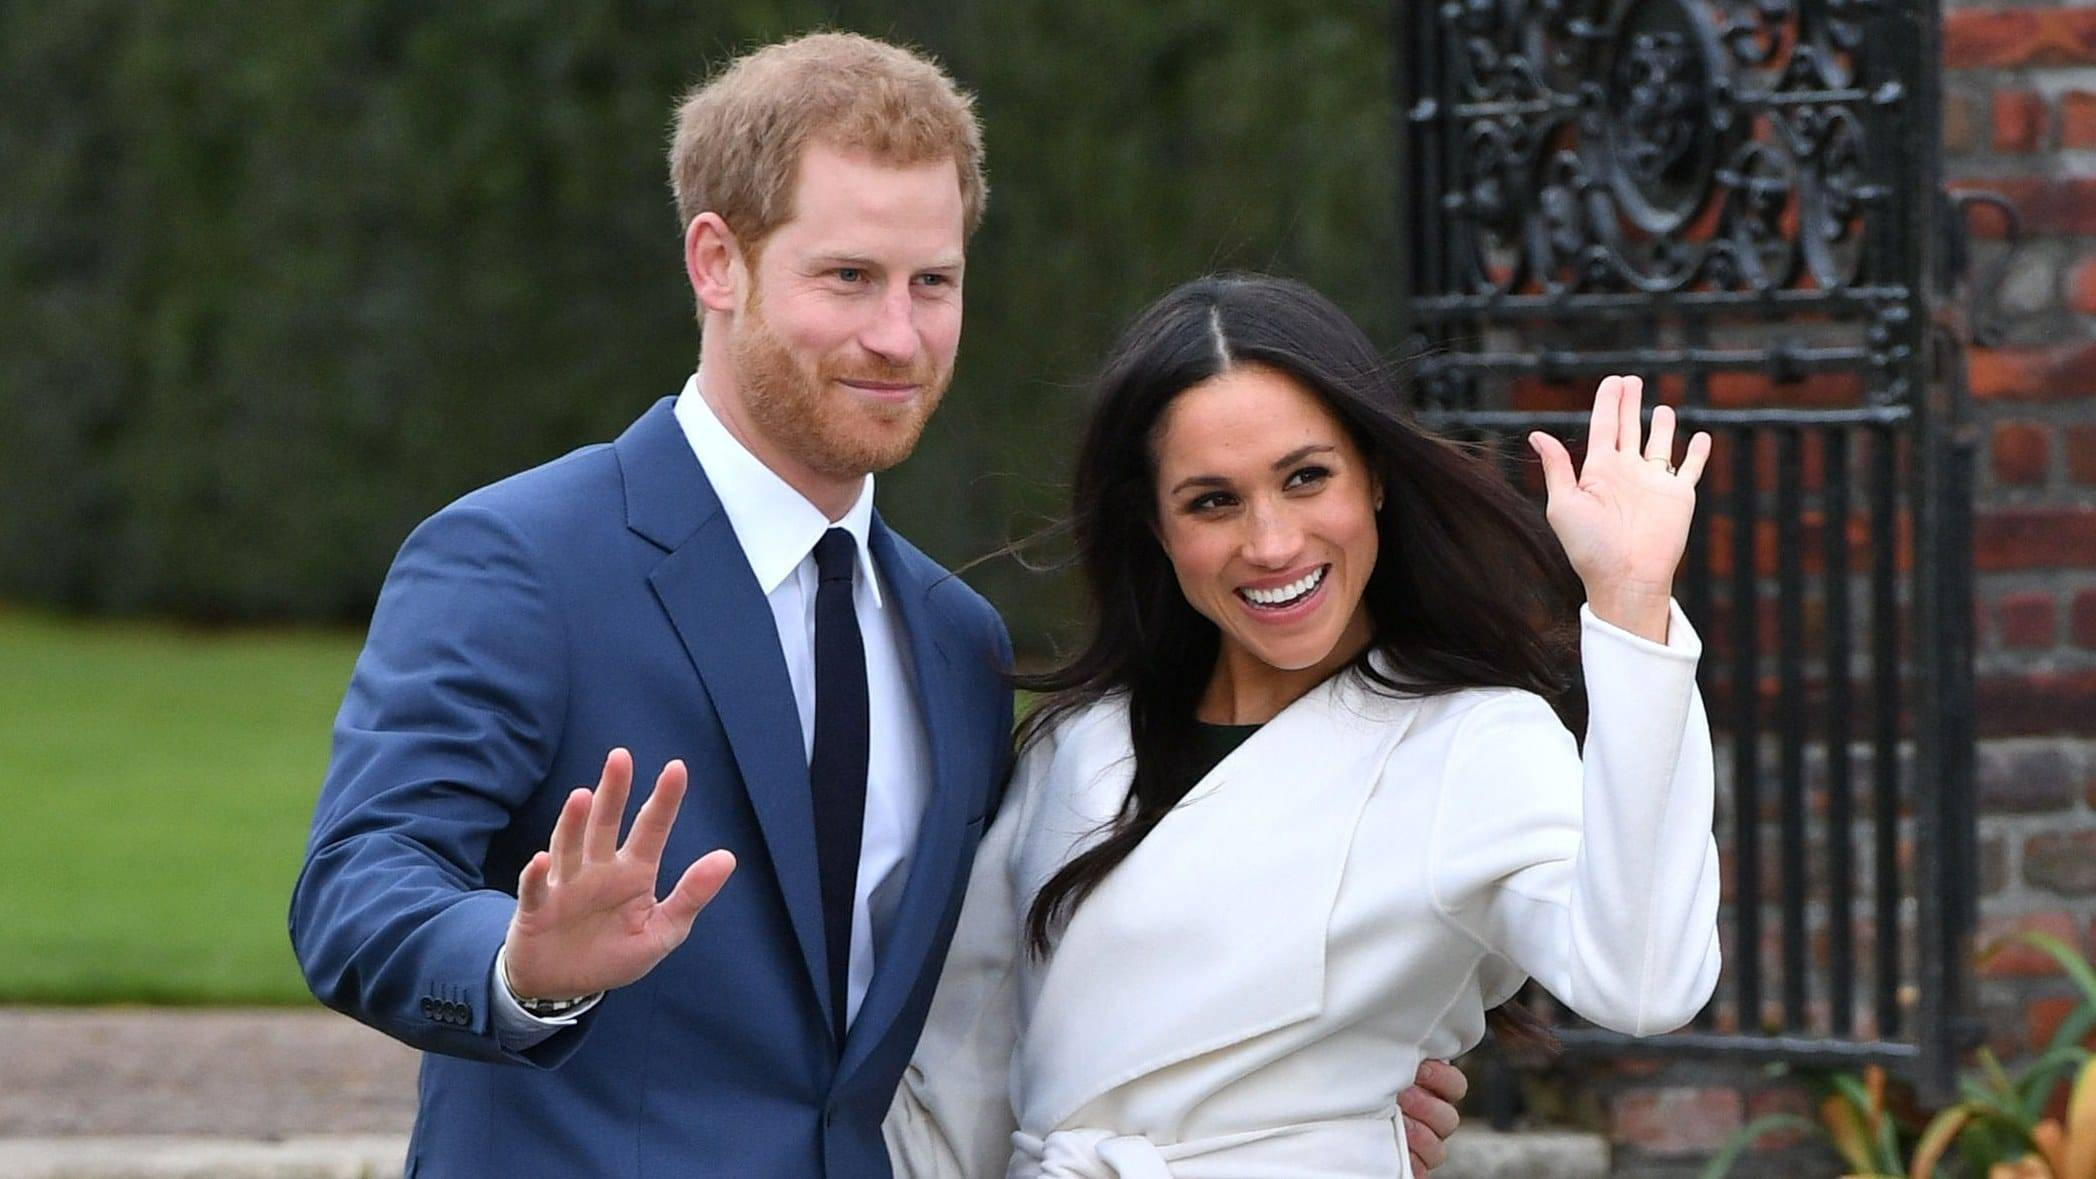 prince harry and meghan - Extravagant Wedding Cars: What will Prince Harry & Meghan Markle Choose?